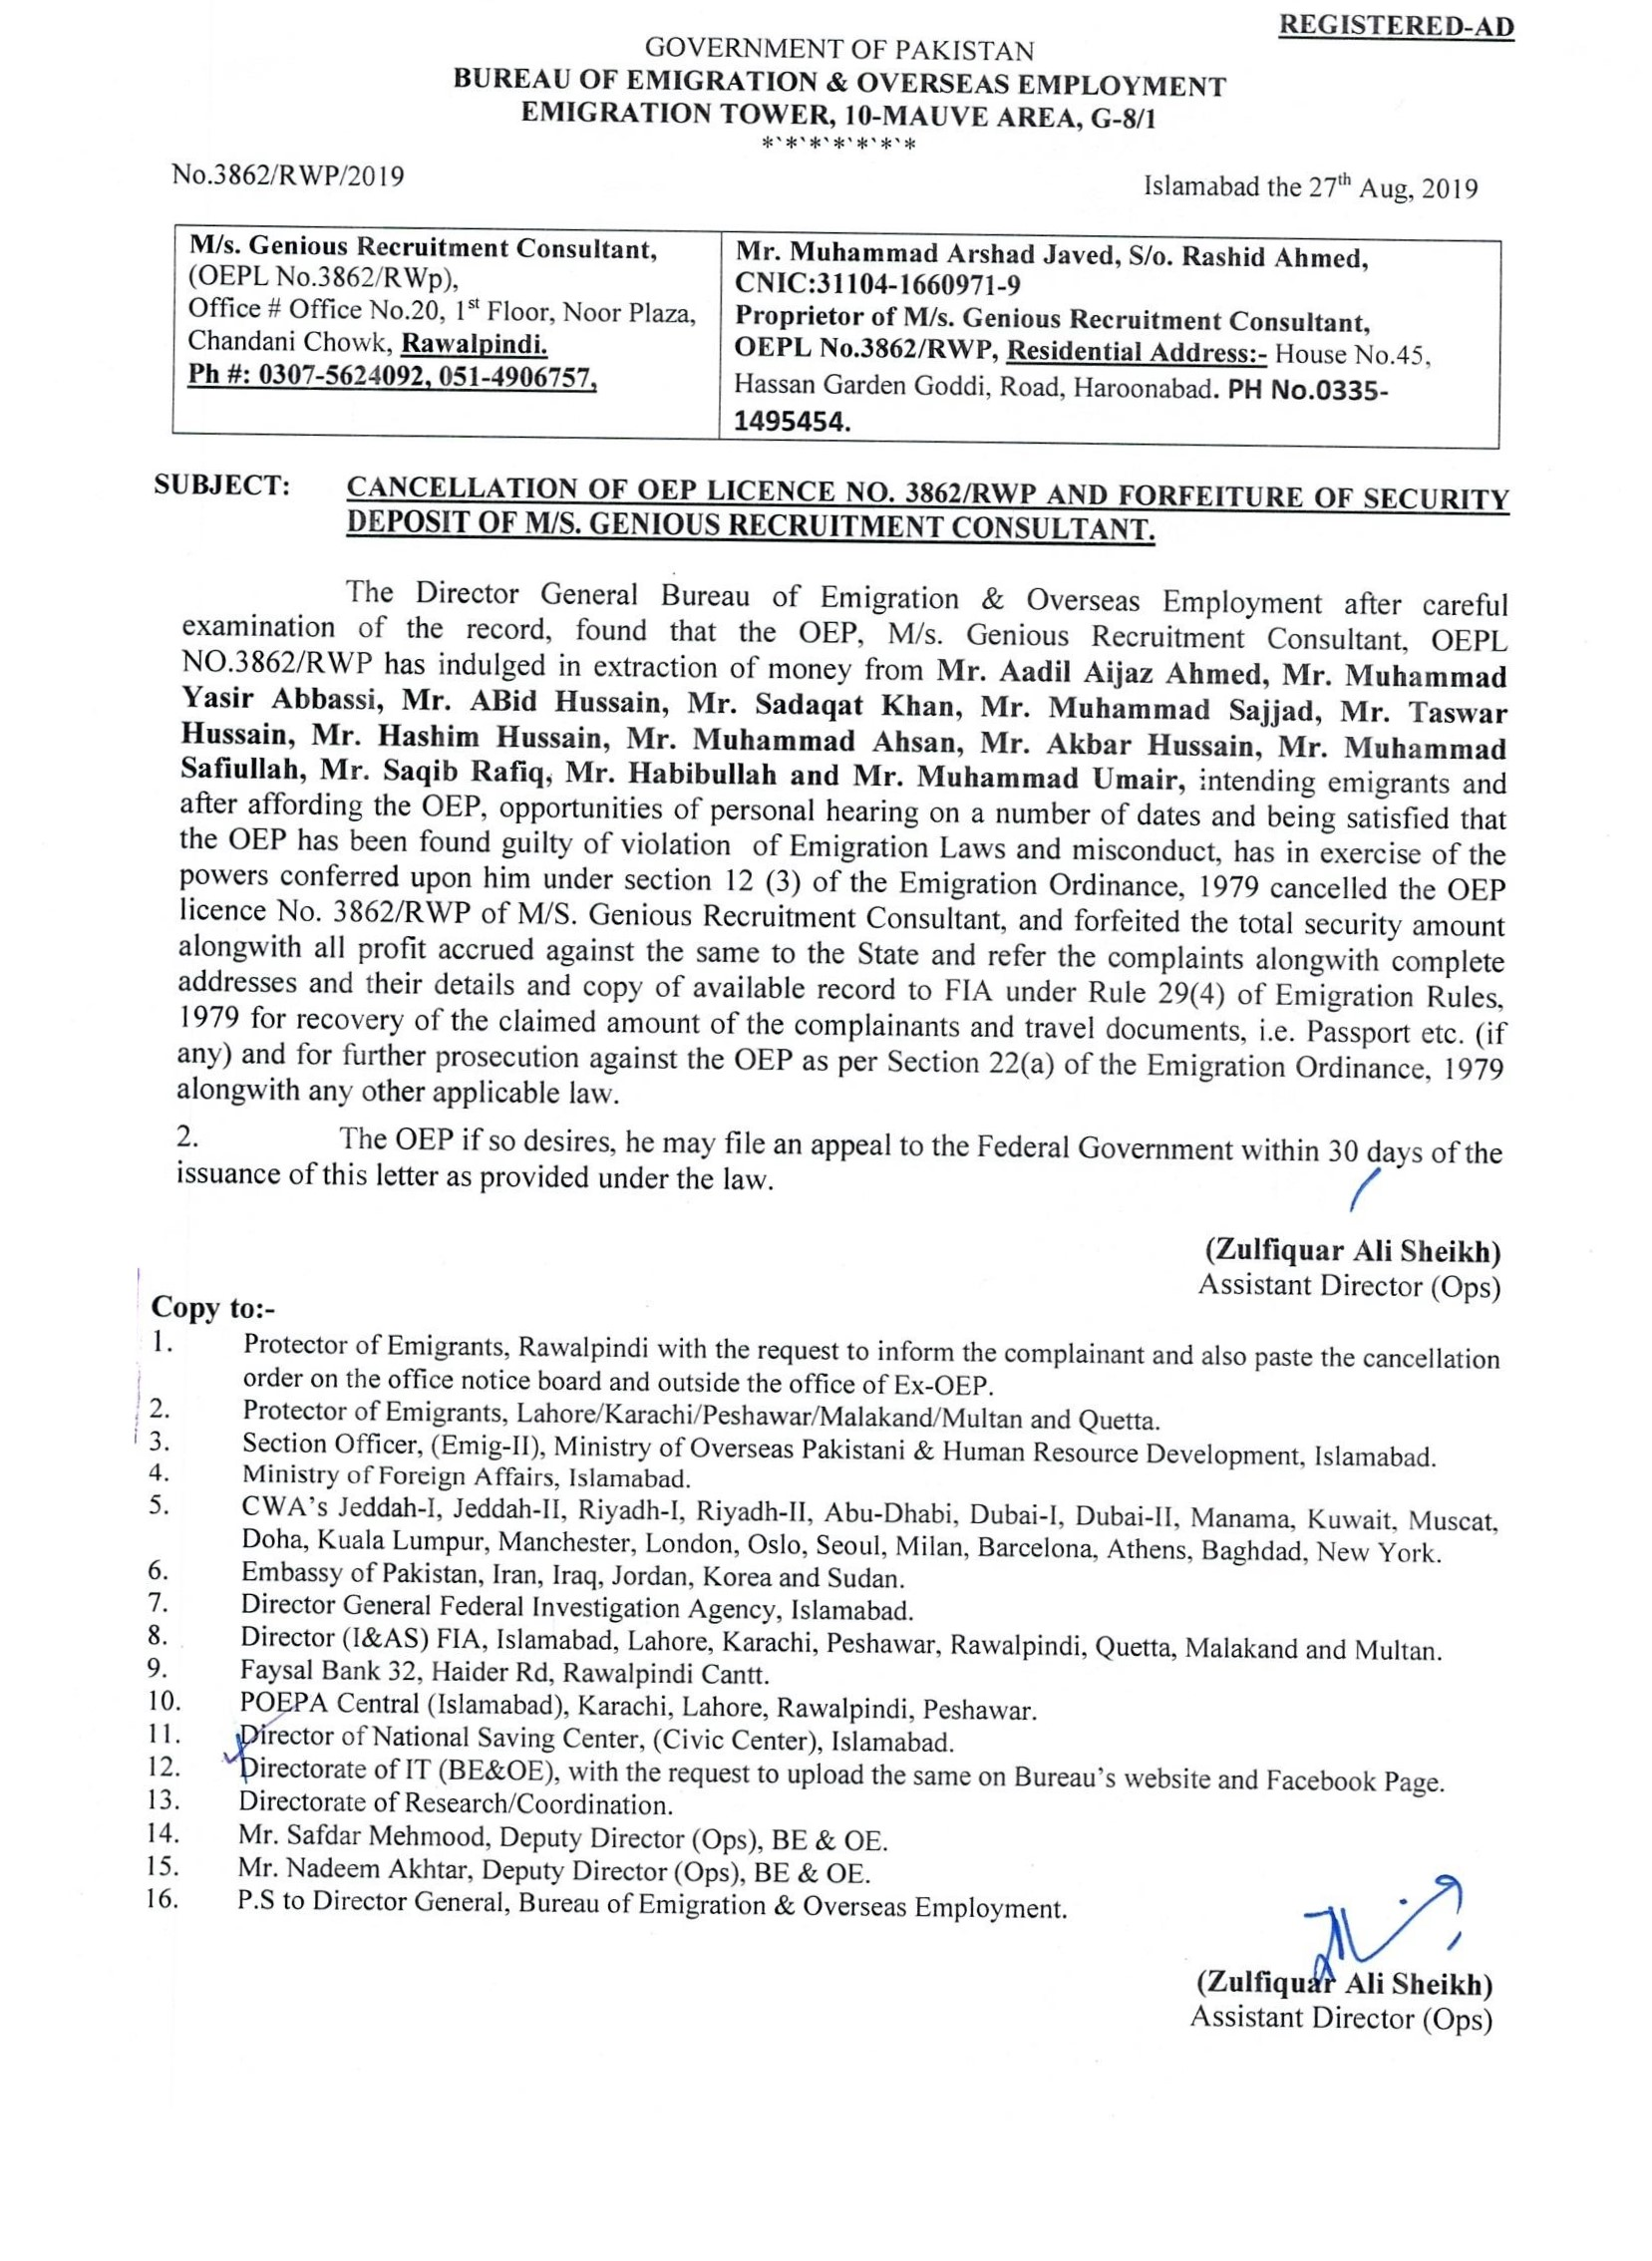 Cancellation of OEP Licence No  3862/RWP & Forfeiture of